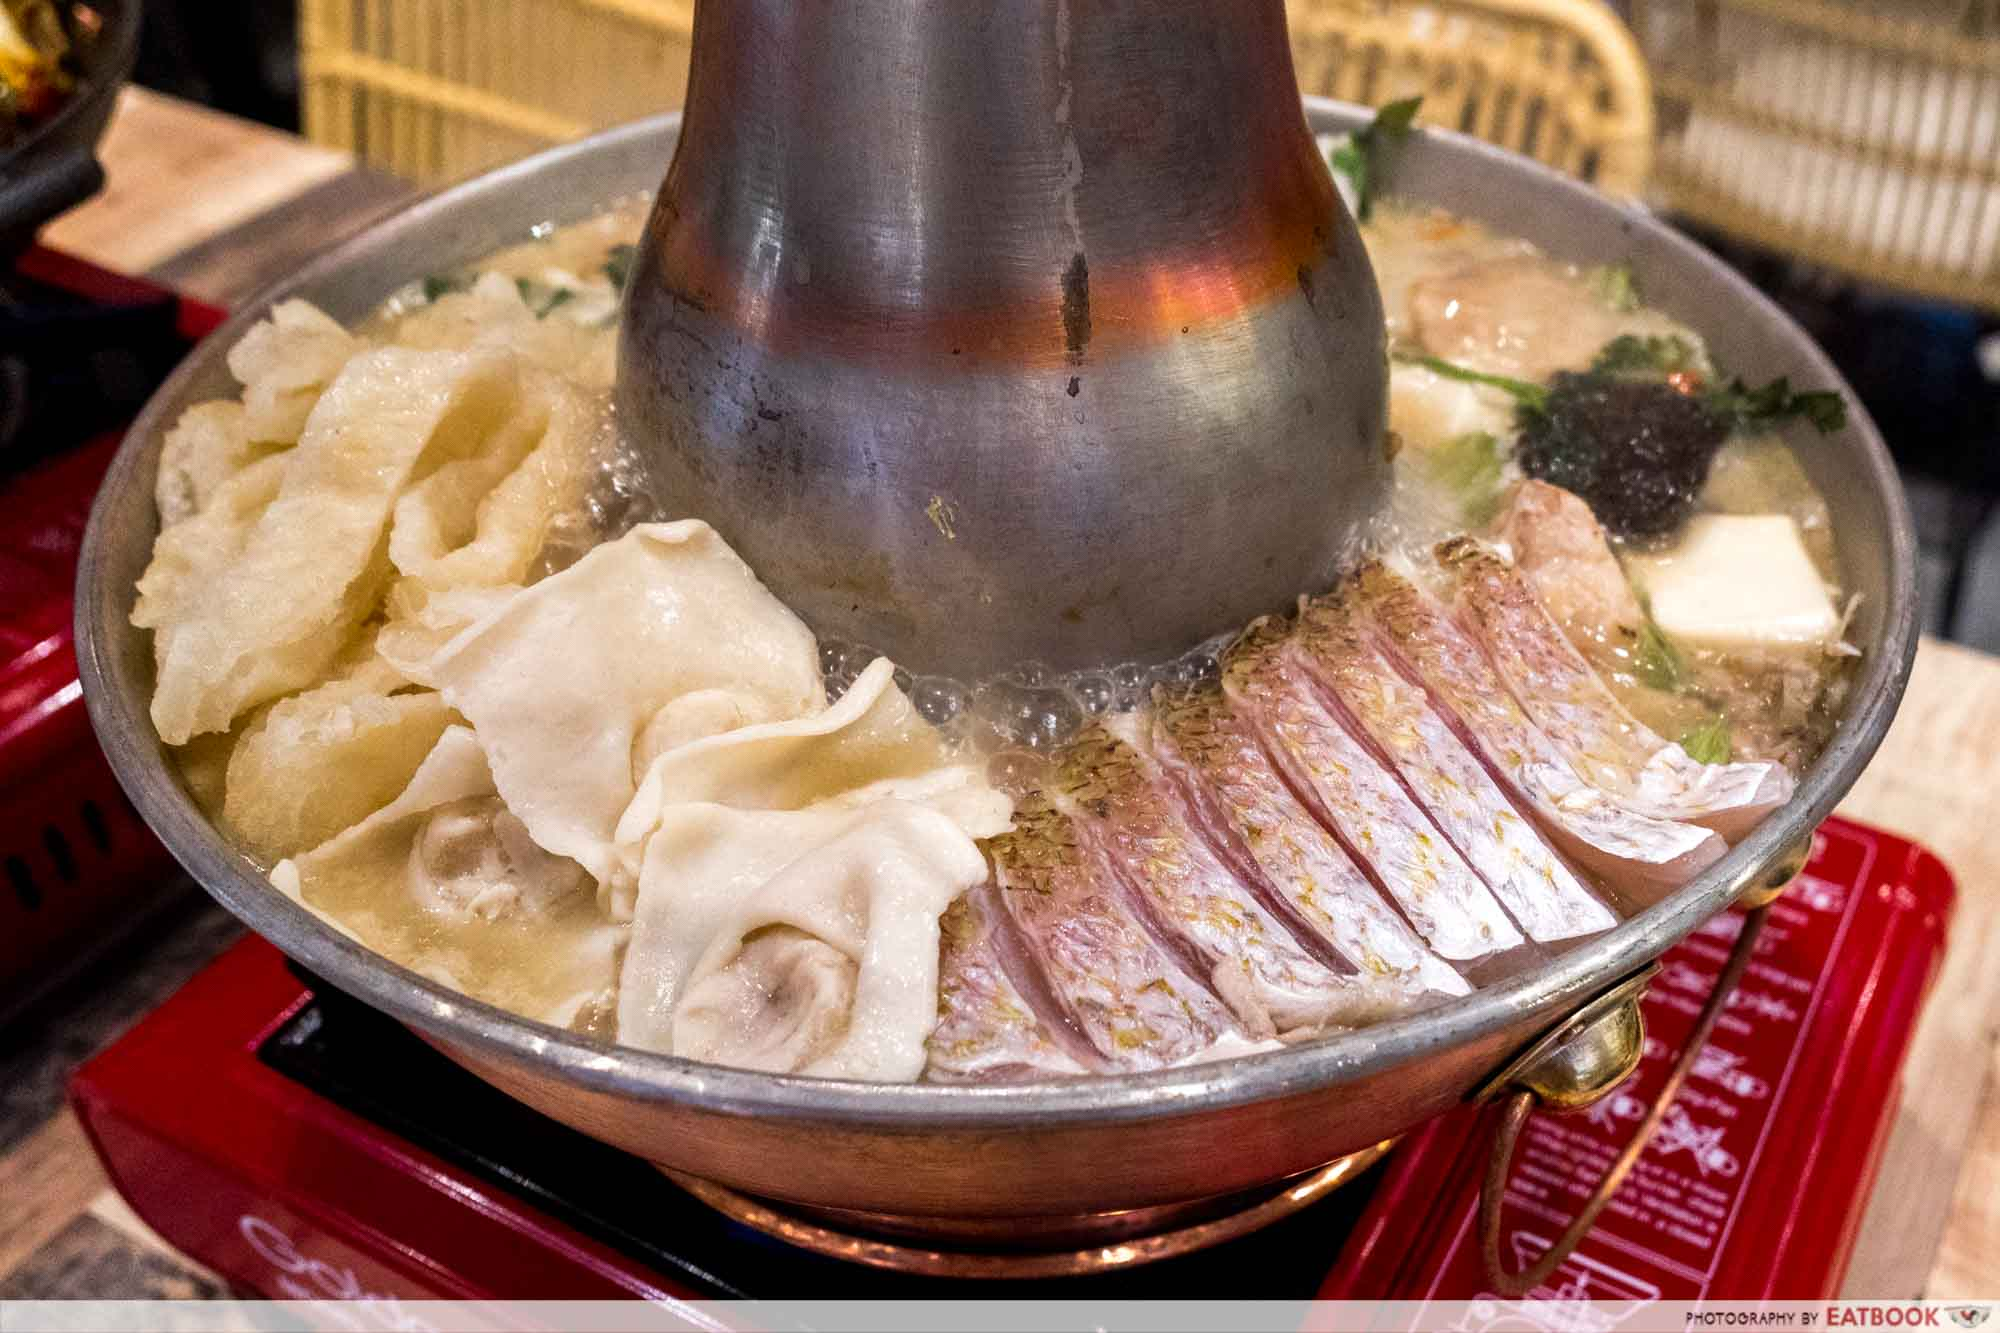 Fatbird - Fish Head Steamboat With Extra Ingredients